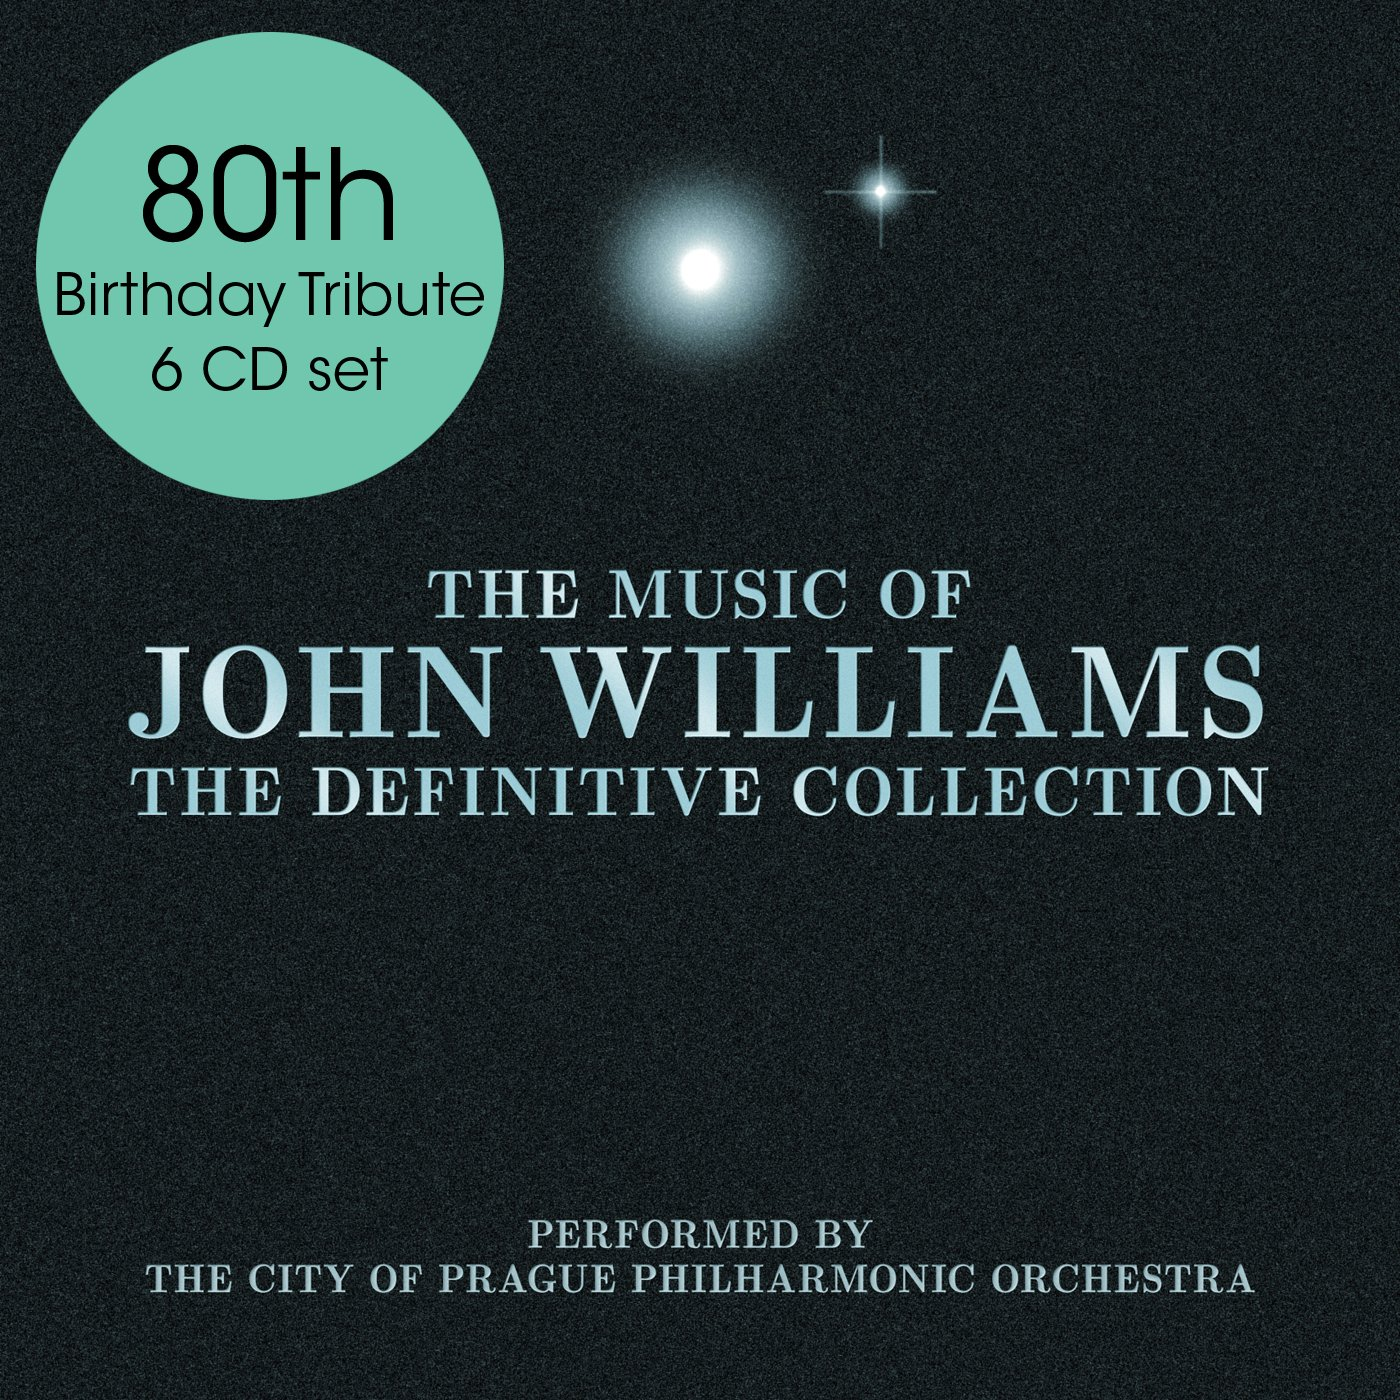 The Music Of John Williams: The Definitive Collection by SILVA SCREEN MUSIC